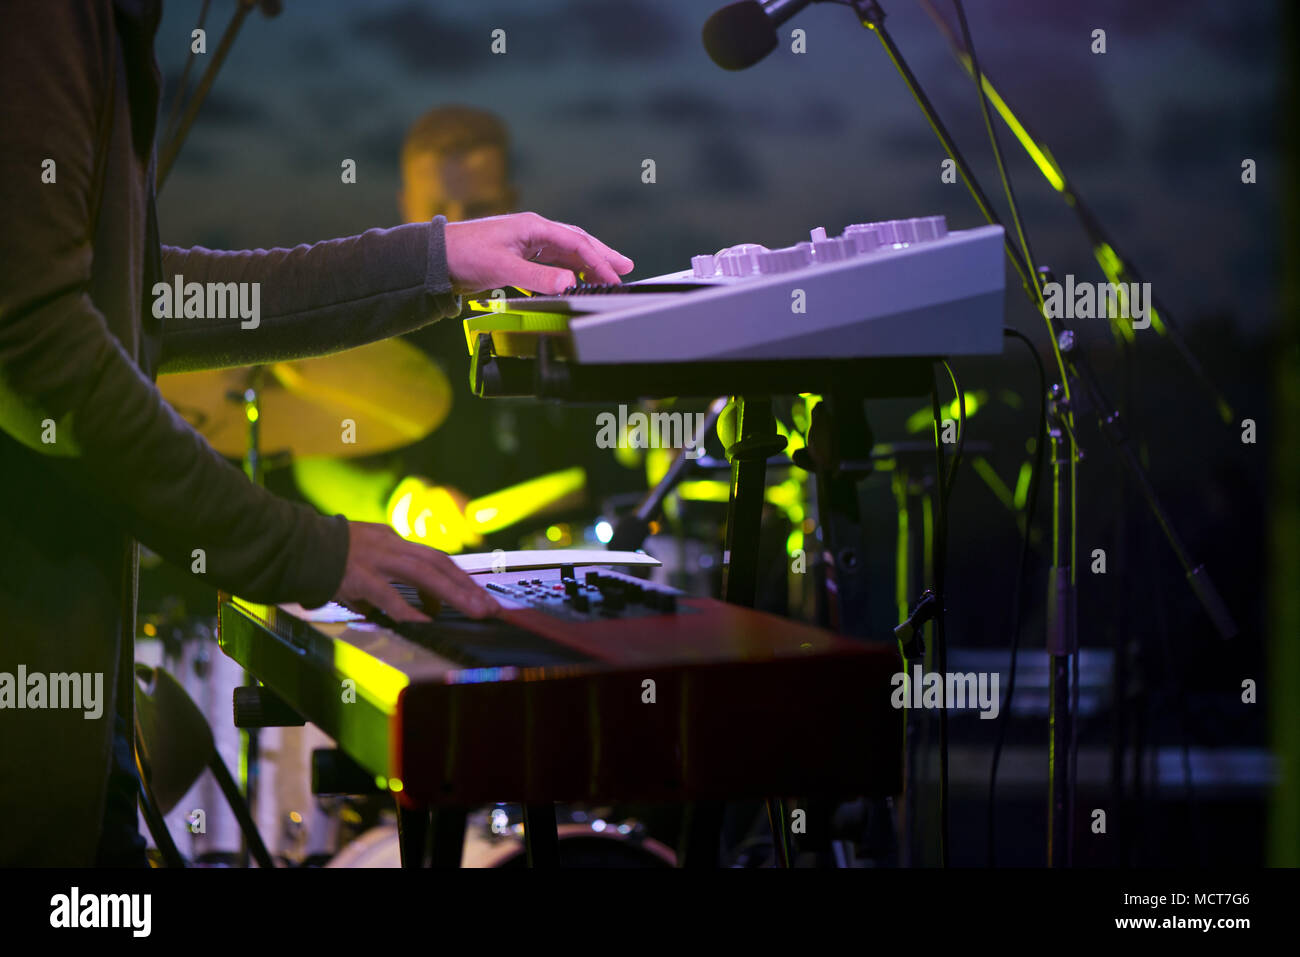 Male musician plays a musical instrument on the stage. Artist playing on the keyboard synthesizer piano keys. Live concert of electronic music at nigh - Stock Image